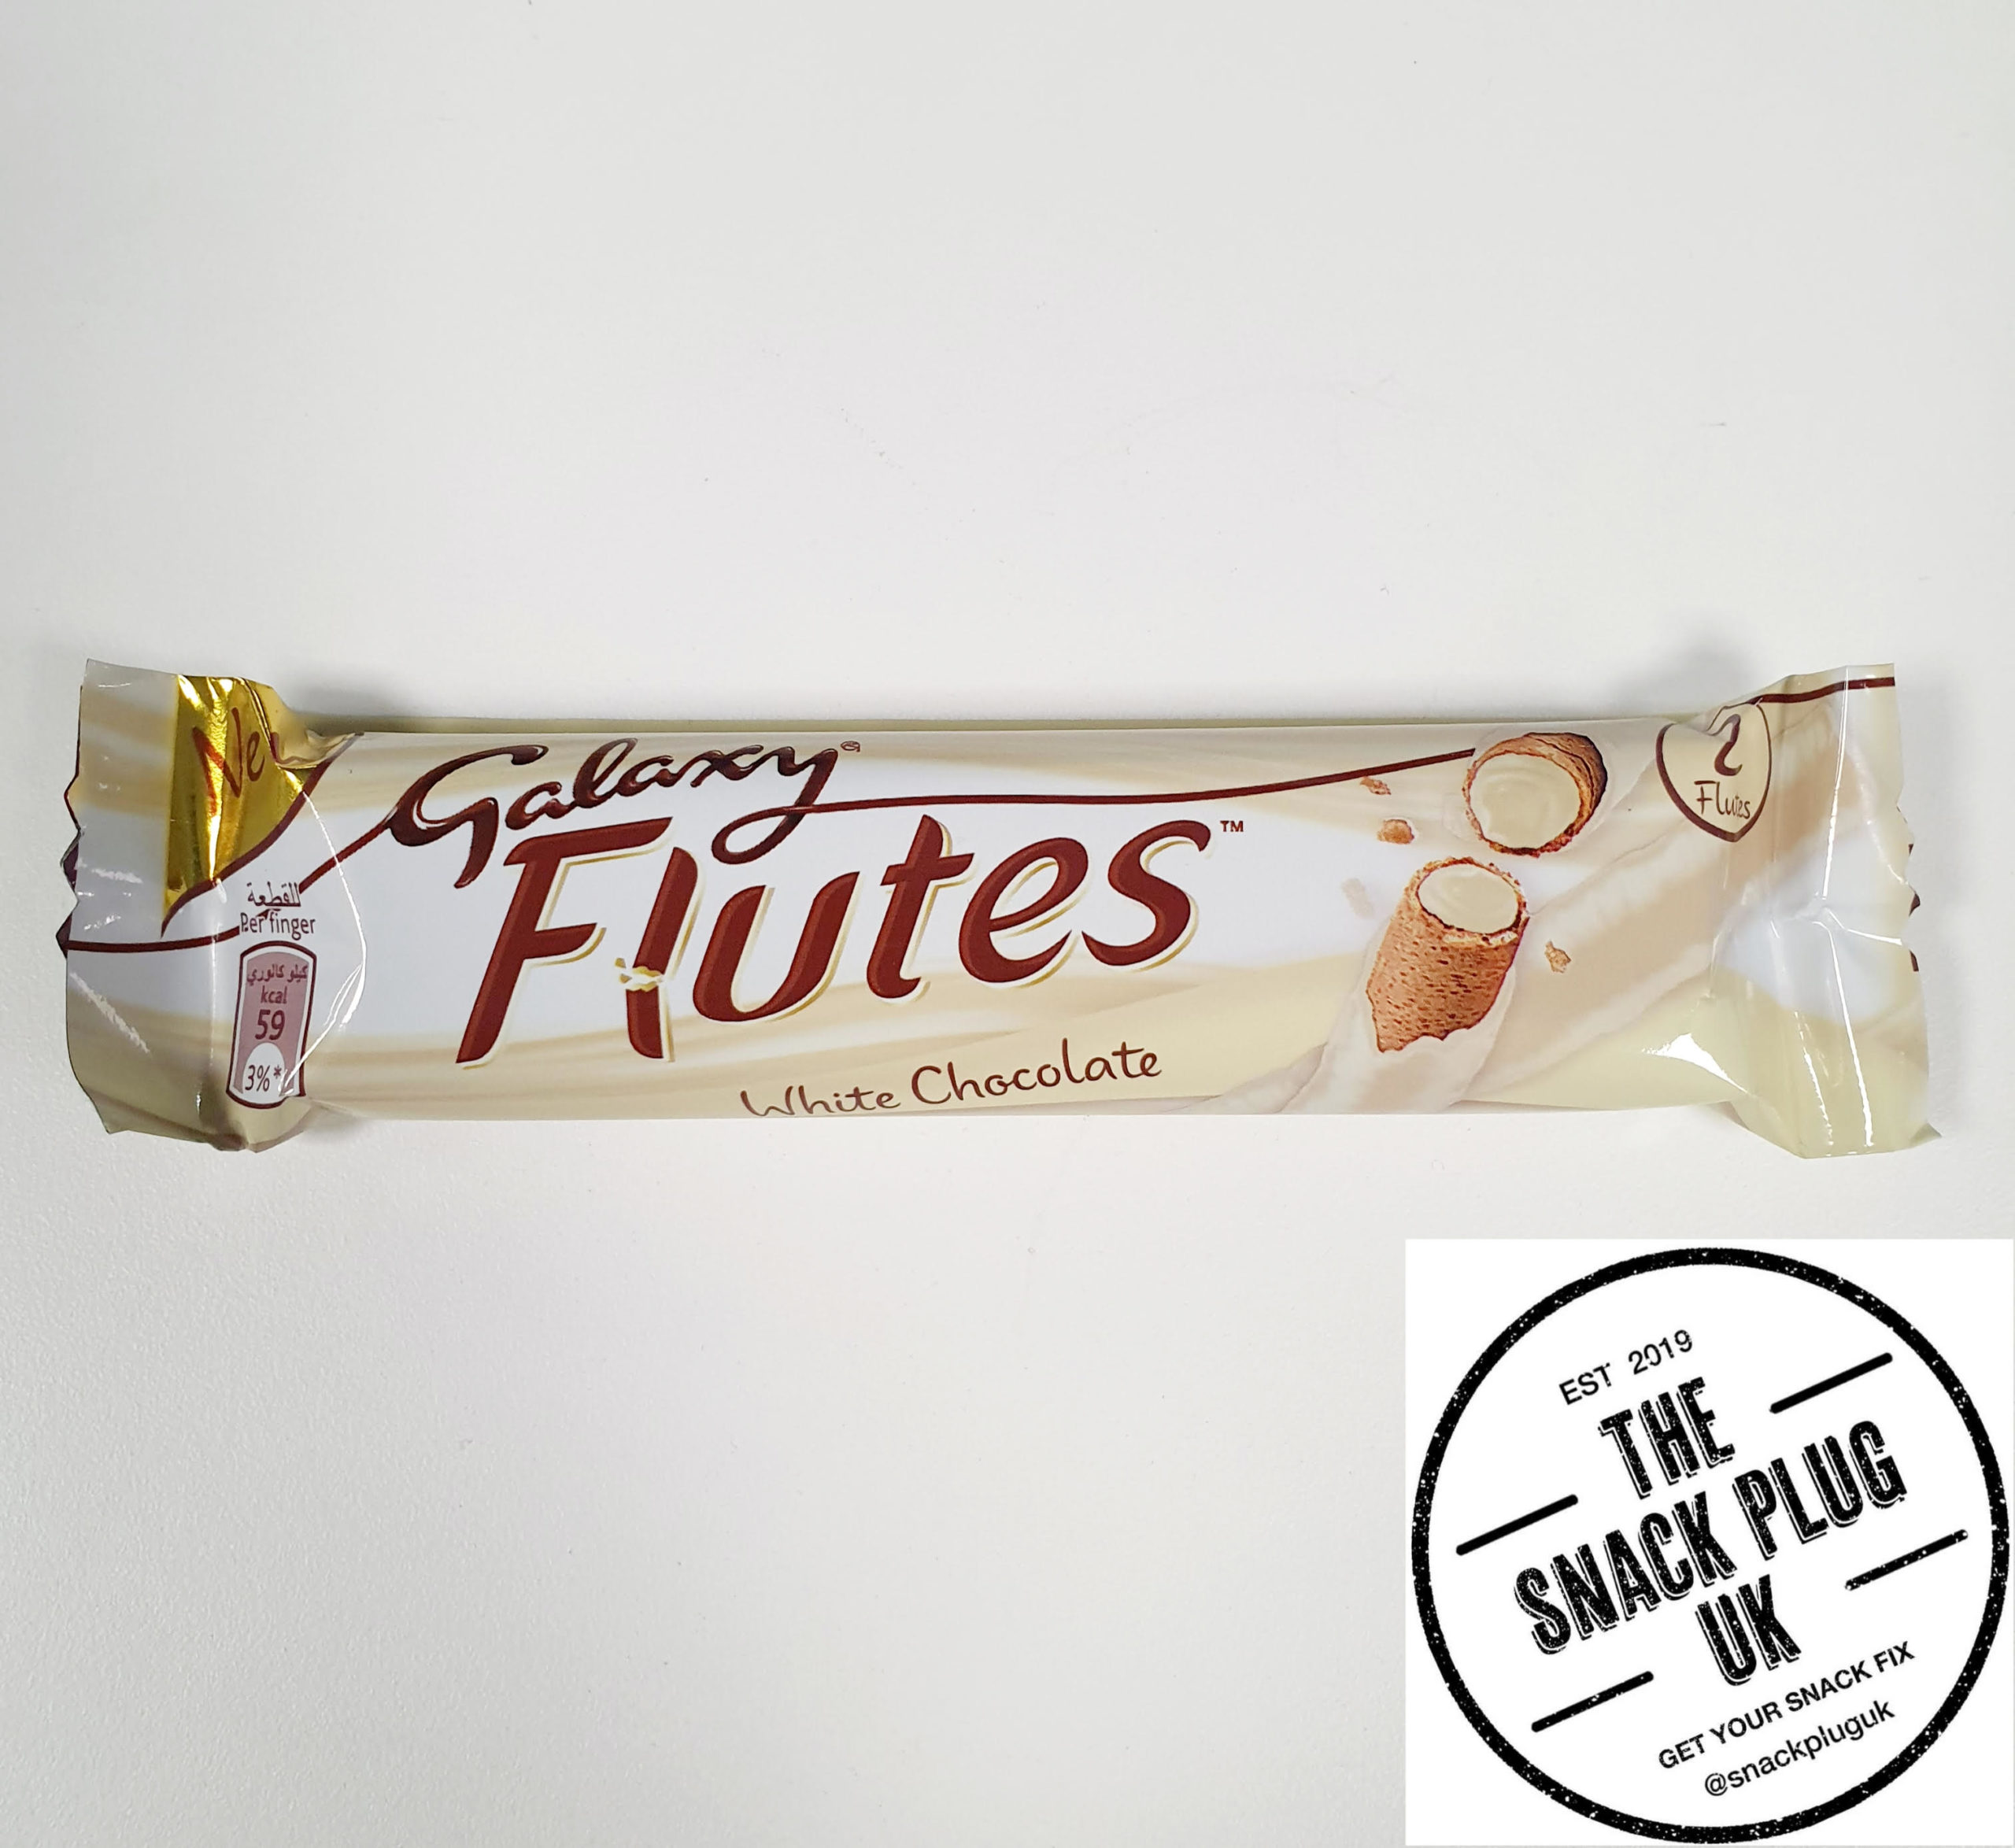 Galaxy Flutes White Chocolate 225g